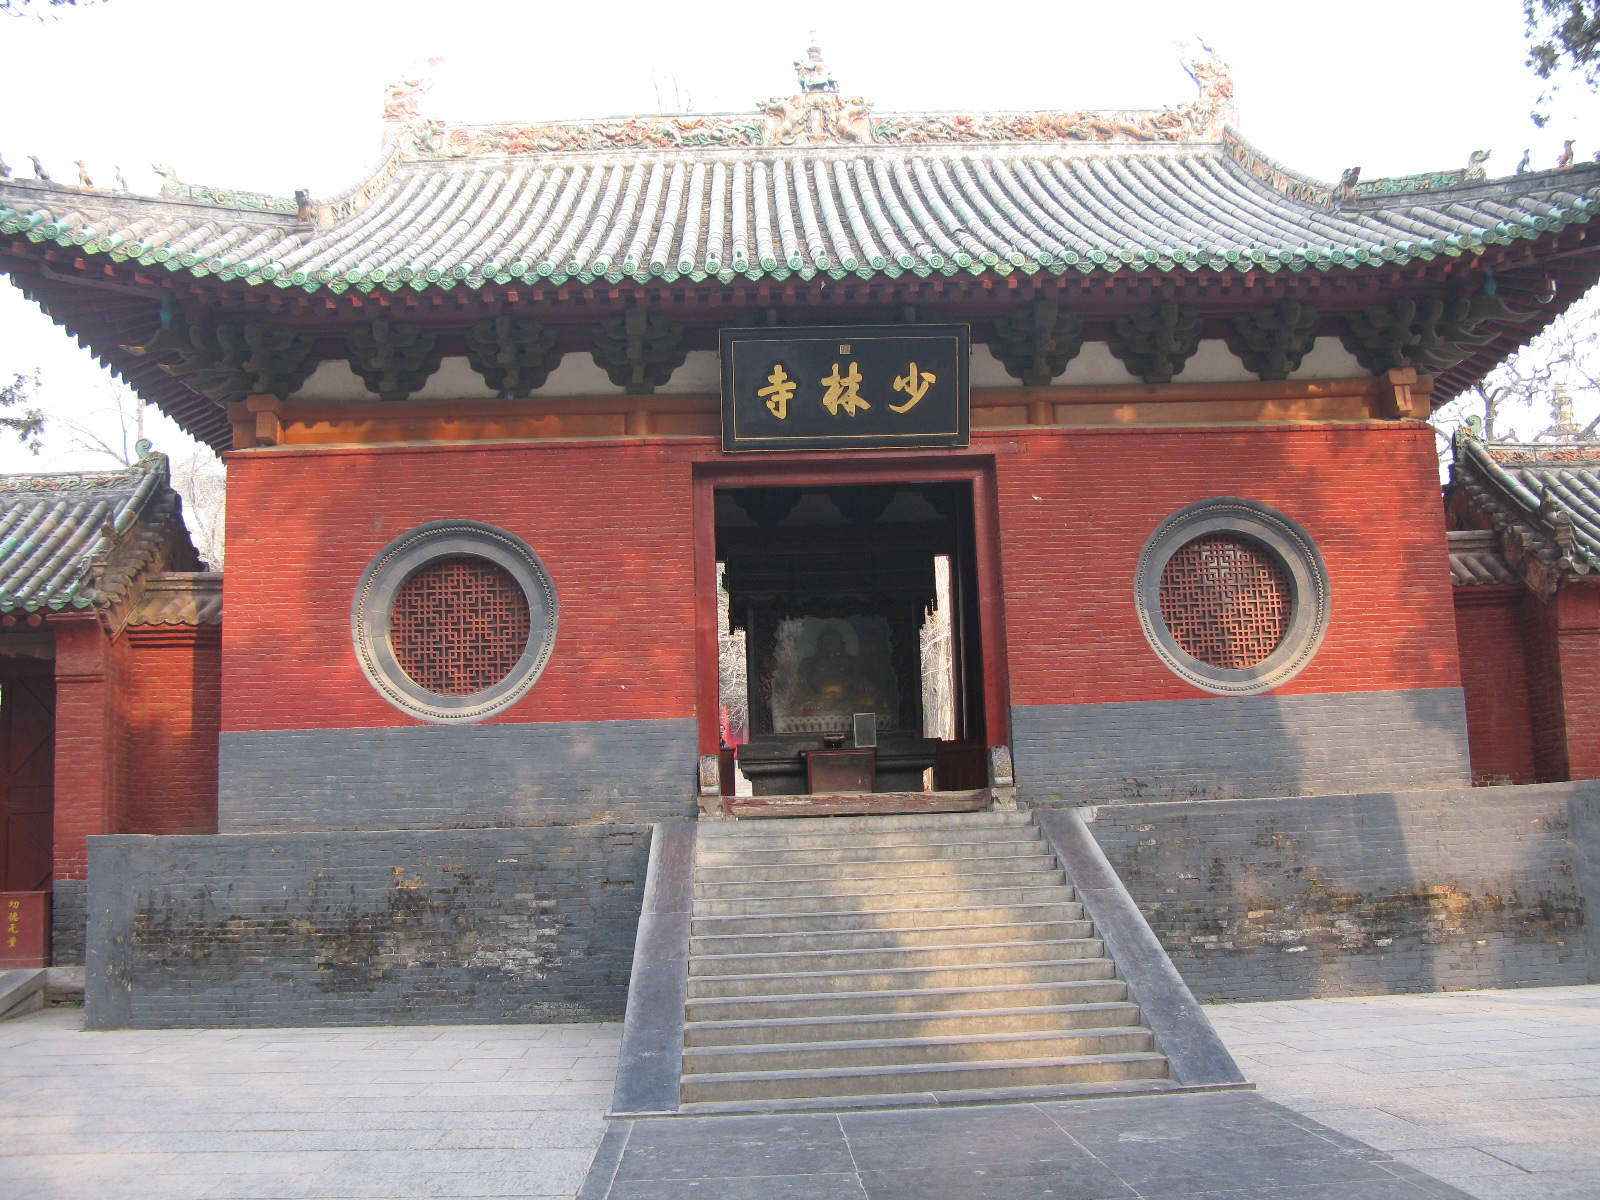 the main characteristics of the shaolin temple Major figures & events shaolin temple's fortunes rose with the ascension of the tang szczepanski, kallie the shaolin monks thoughtco, jul.